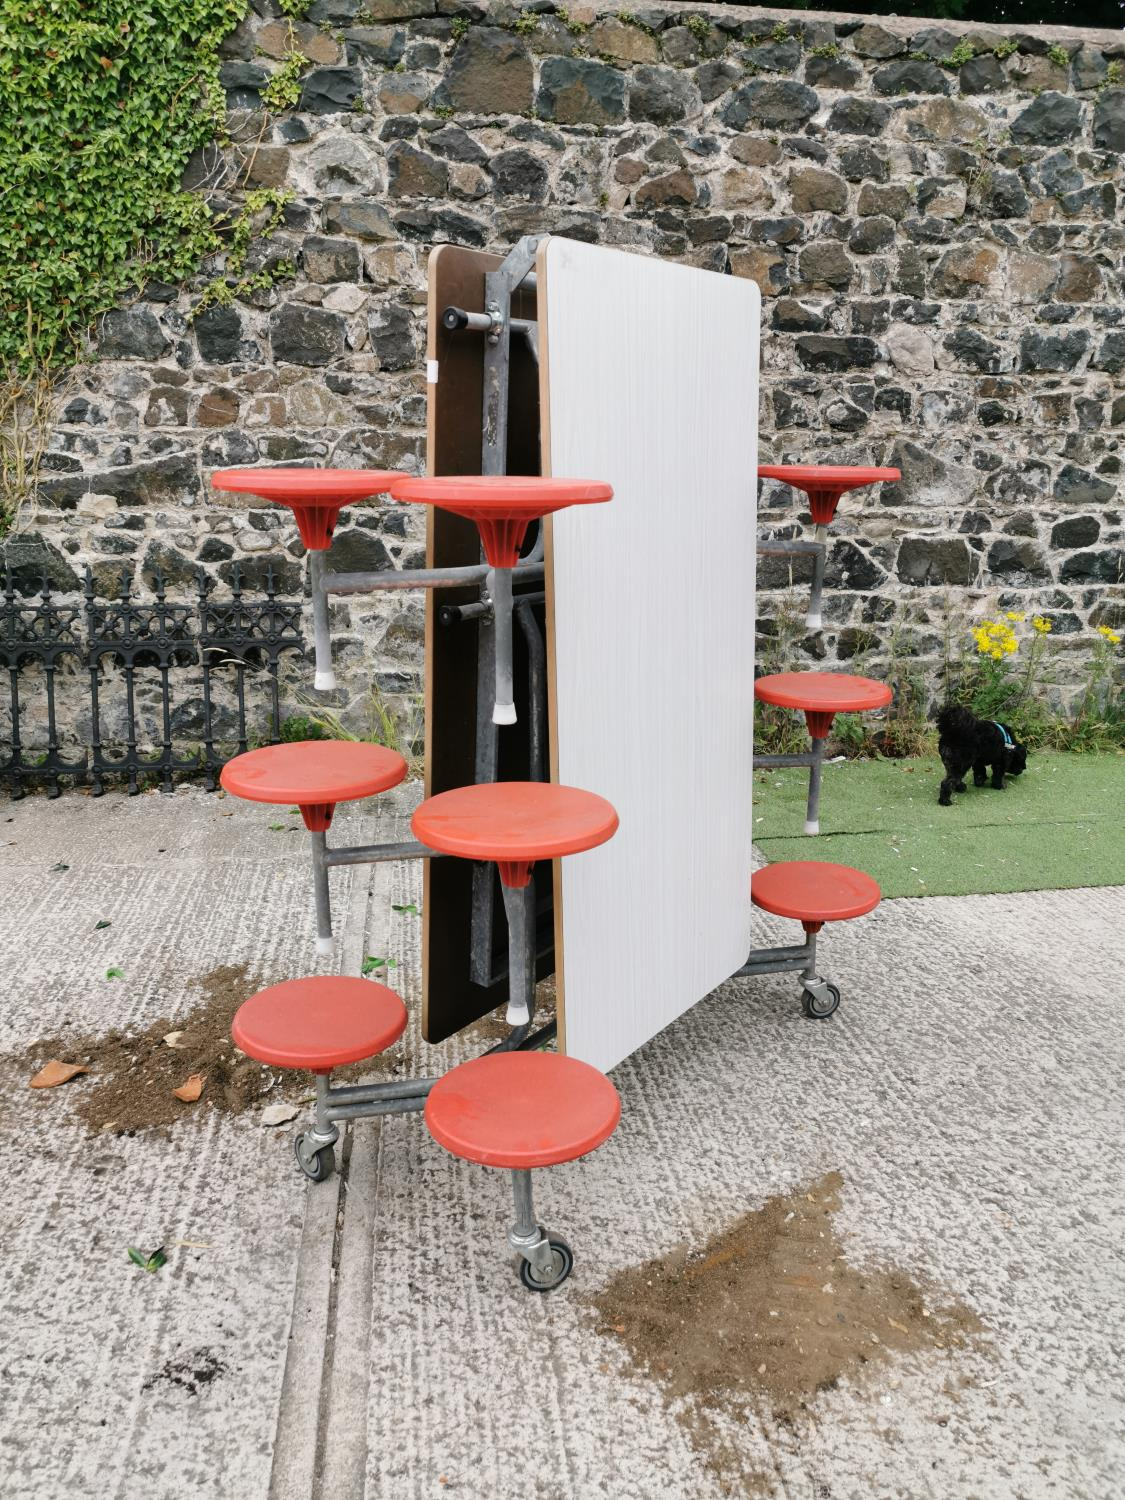 Retro folding garden table and seats. - Image 3 of 3